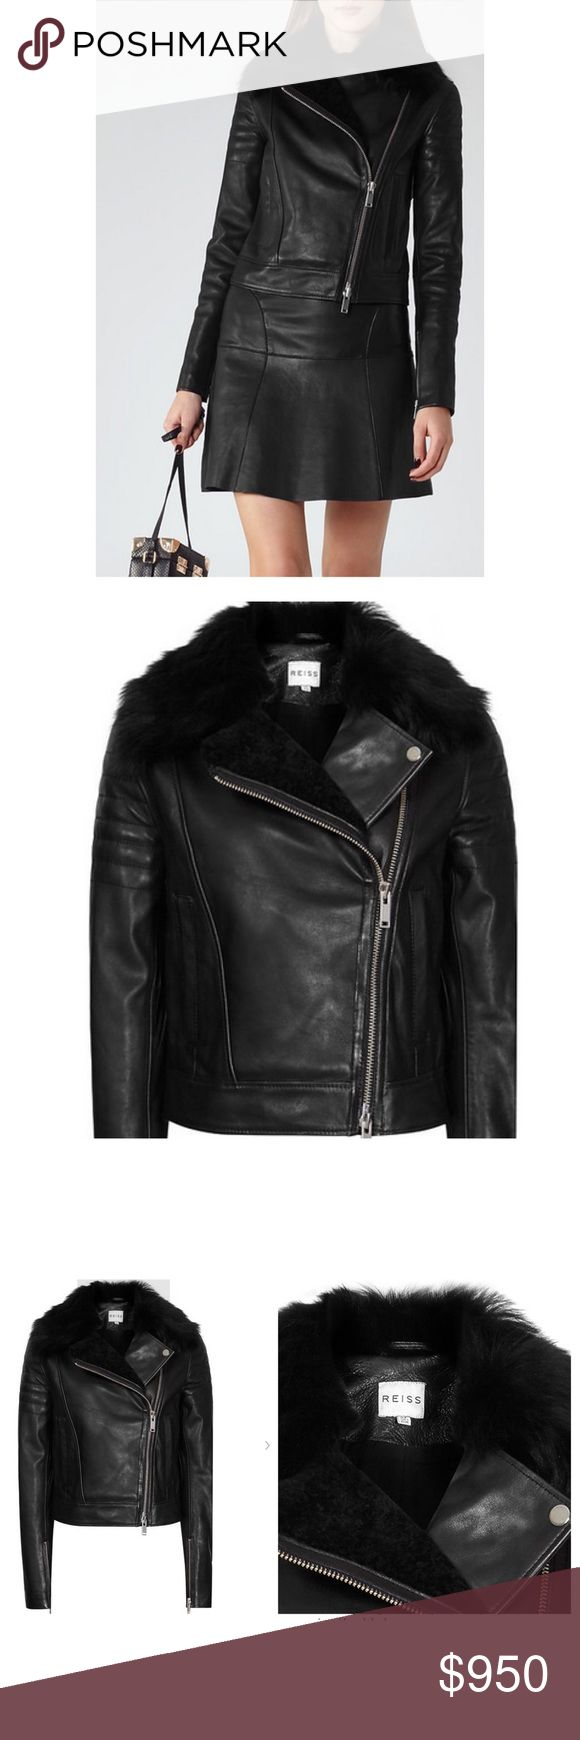 SOLD OUT NWT REISS TILLY LEATHER JACKET - US8 NWT Reiss Women's Black Tilly Leather Jacket - US 8 / S-M. THIS IS SOLD OUT EVERYWHERE - even on Reiss.com. The black Tilly style is crafted to a classic design, punctuated with silver-tone metal hardware and has a shearling collar that adds a feminine edge. Wear it with jeans and boots for a modern take. Shearling collar. Part shearling lining Slanted side pockets Double-ended zip fastening. Zipped cuffs Composition - 100% Cow Leather SIZE…